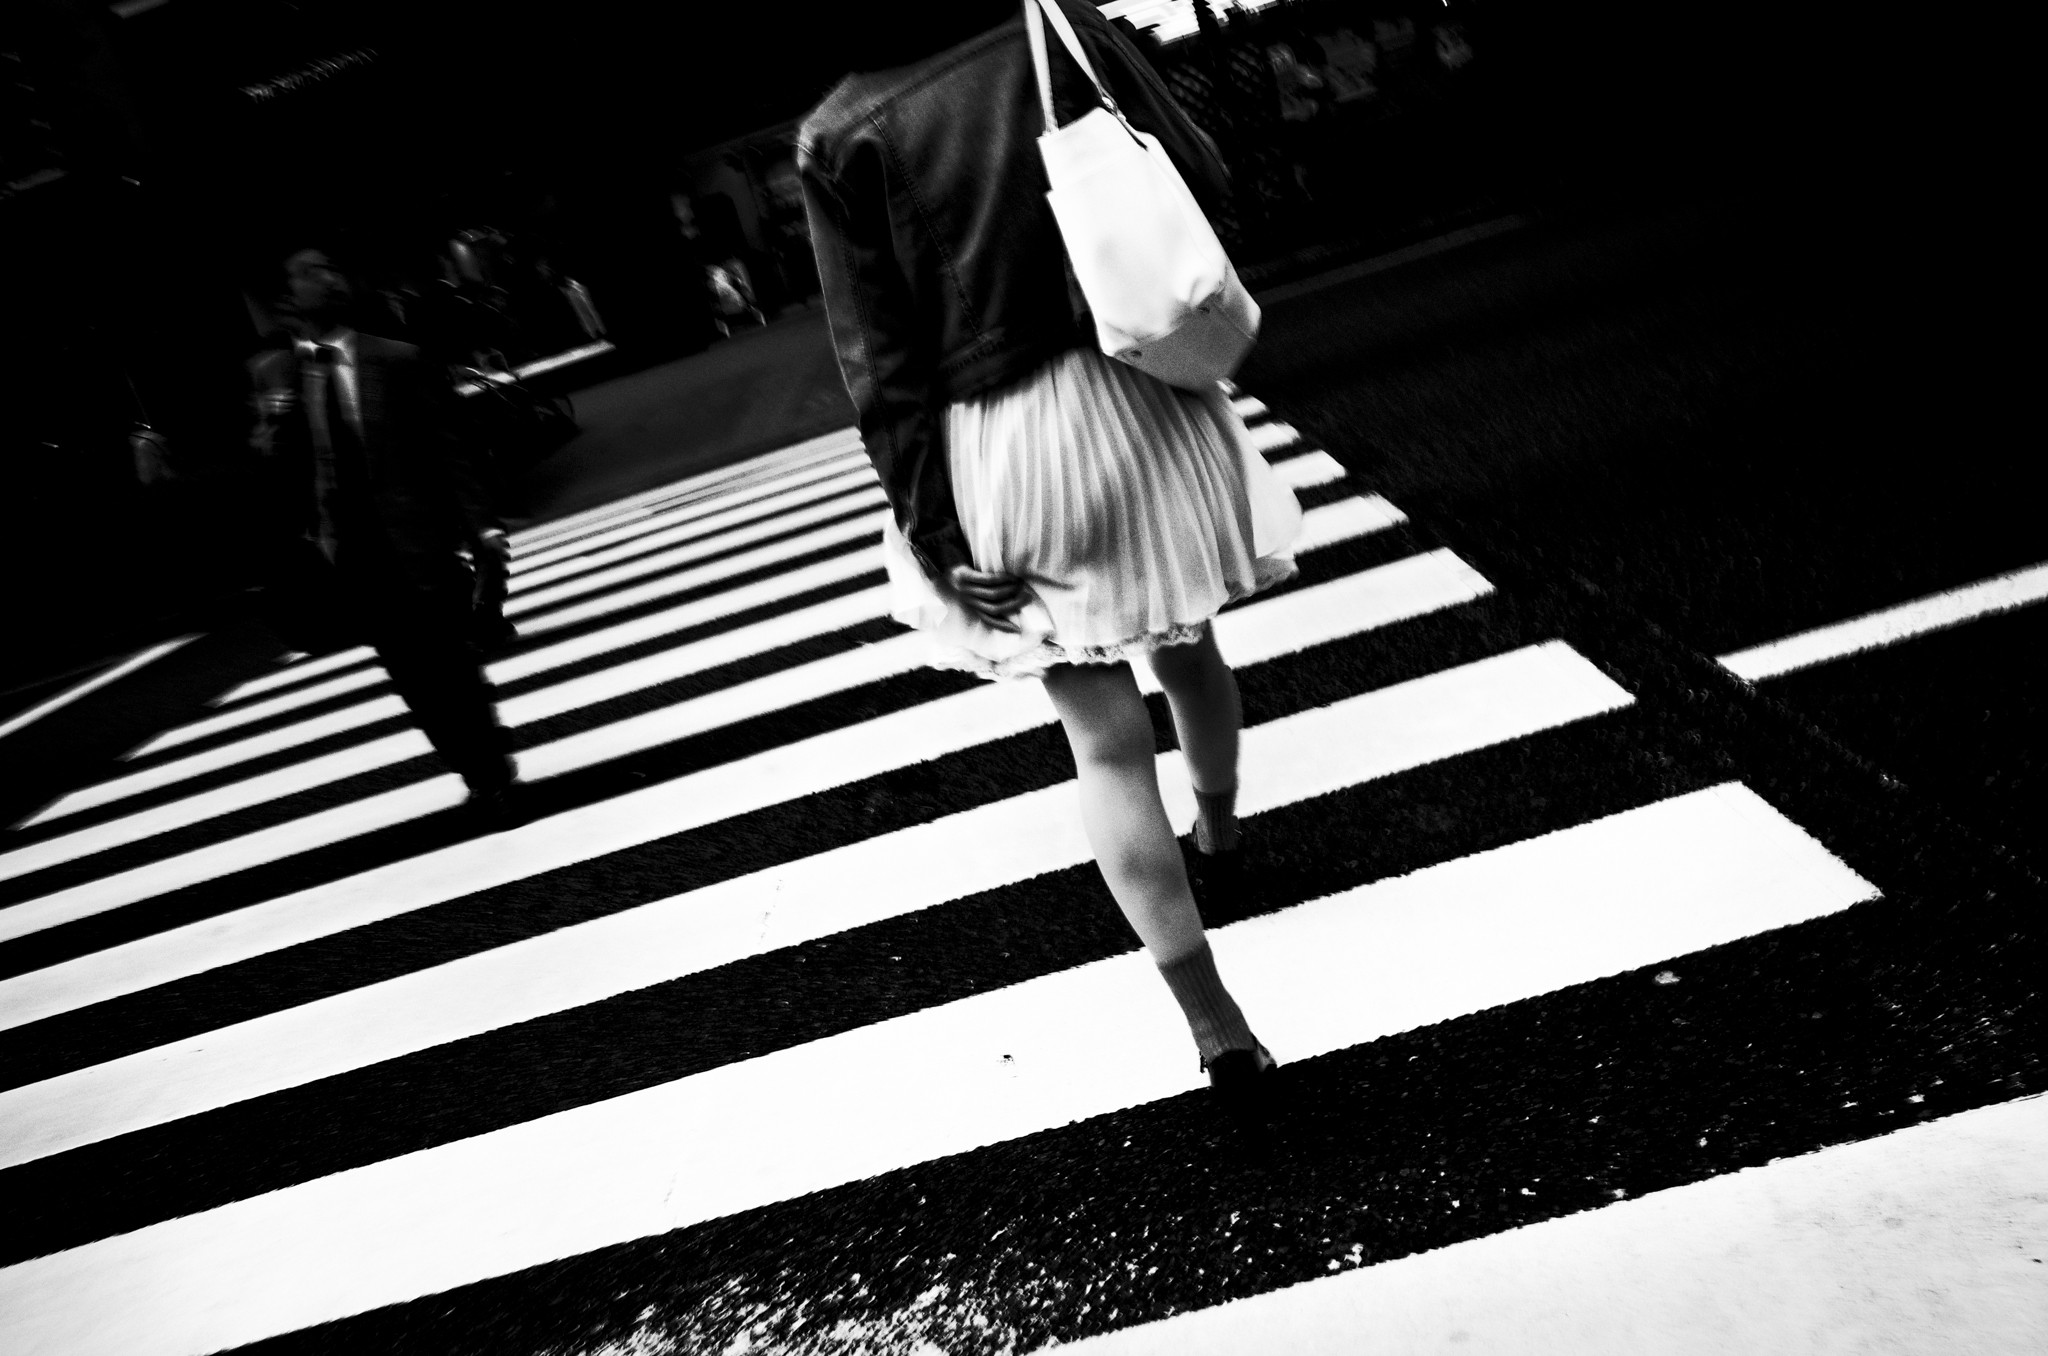 Girl crossing the street in Tokyo, holding her skirt lifted by the wind.